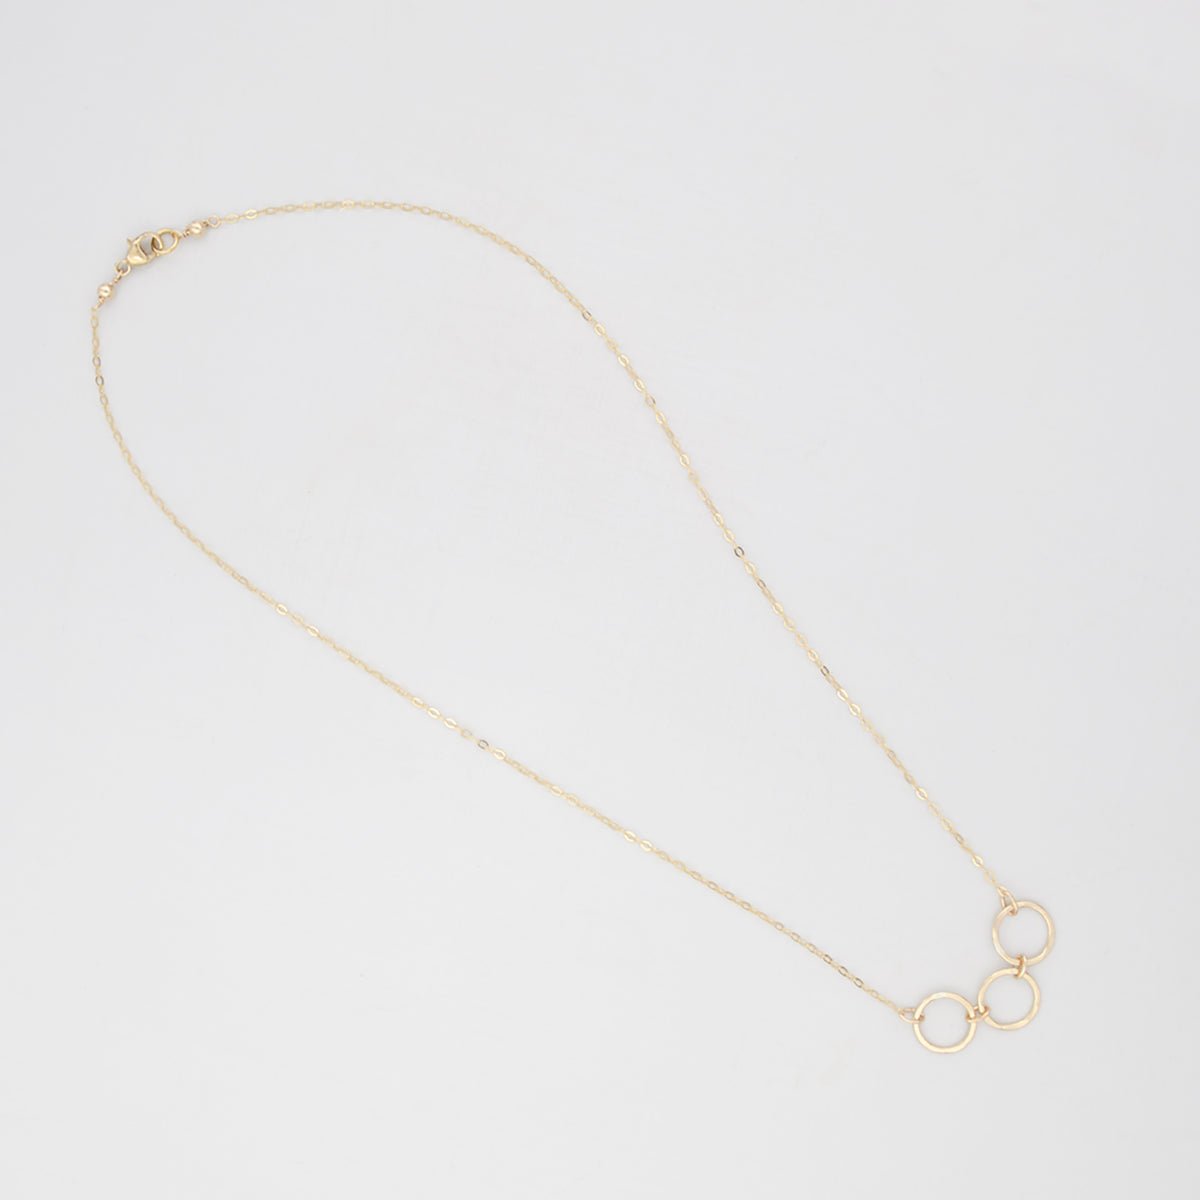 Multiple hammered ring charm necklace 'Tio'